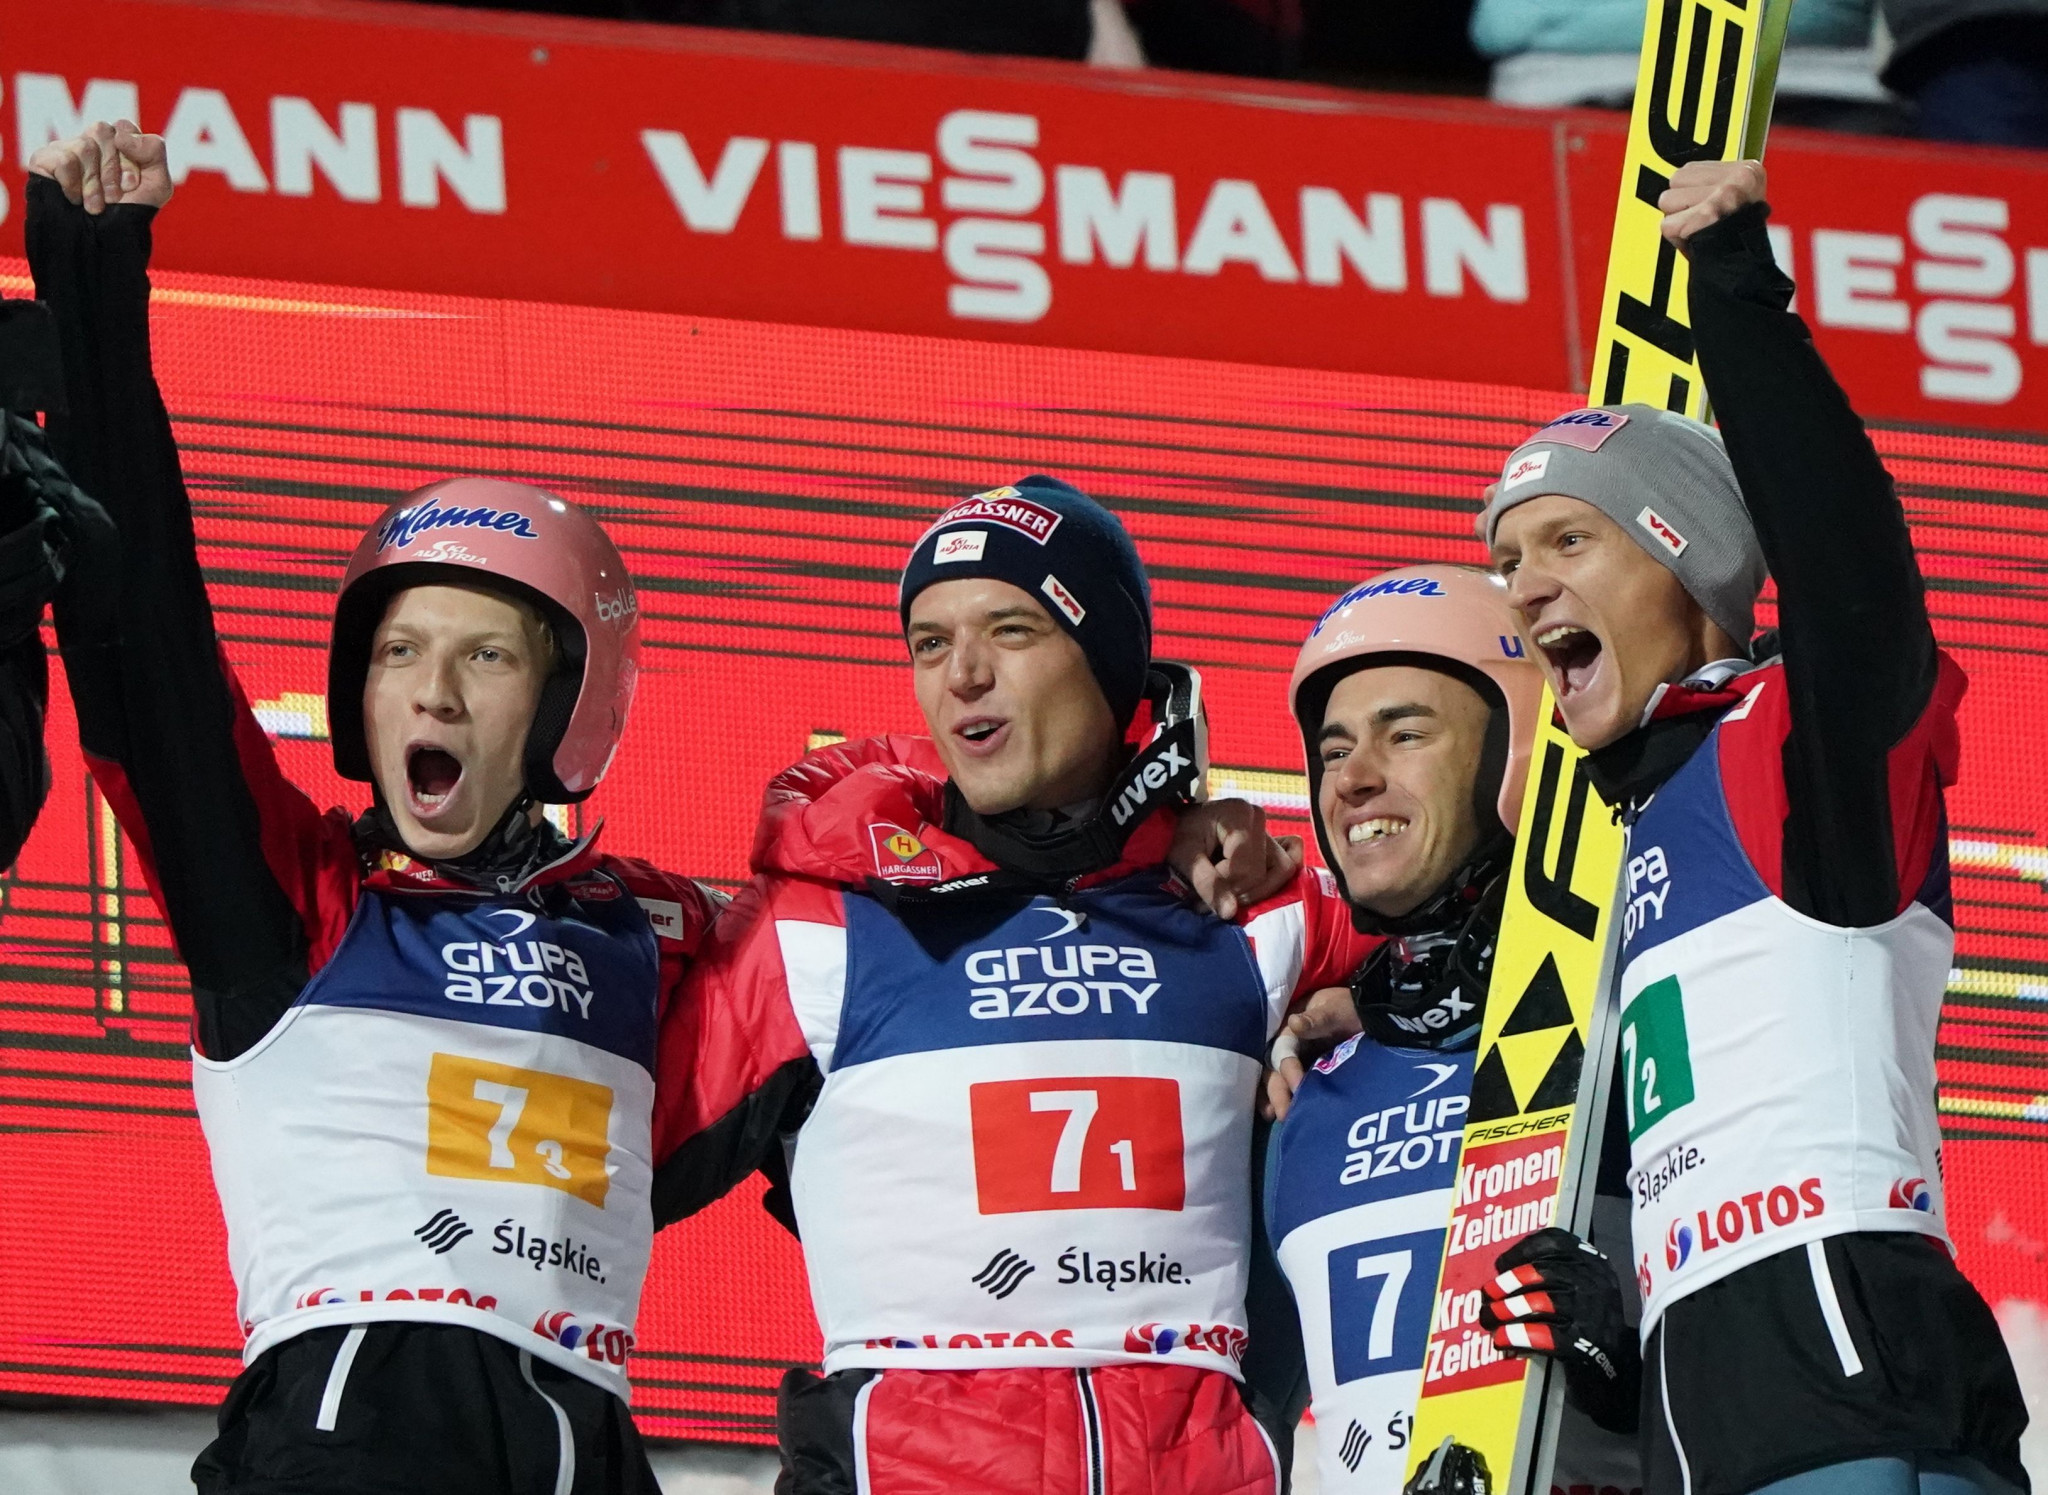 Austria win team event as FIS Ski Jumping World Cup season begins